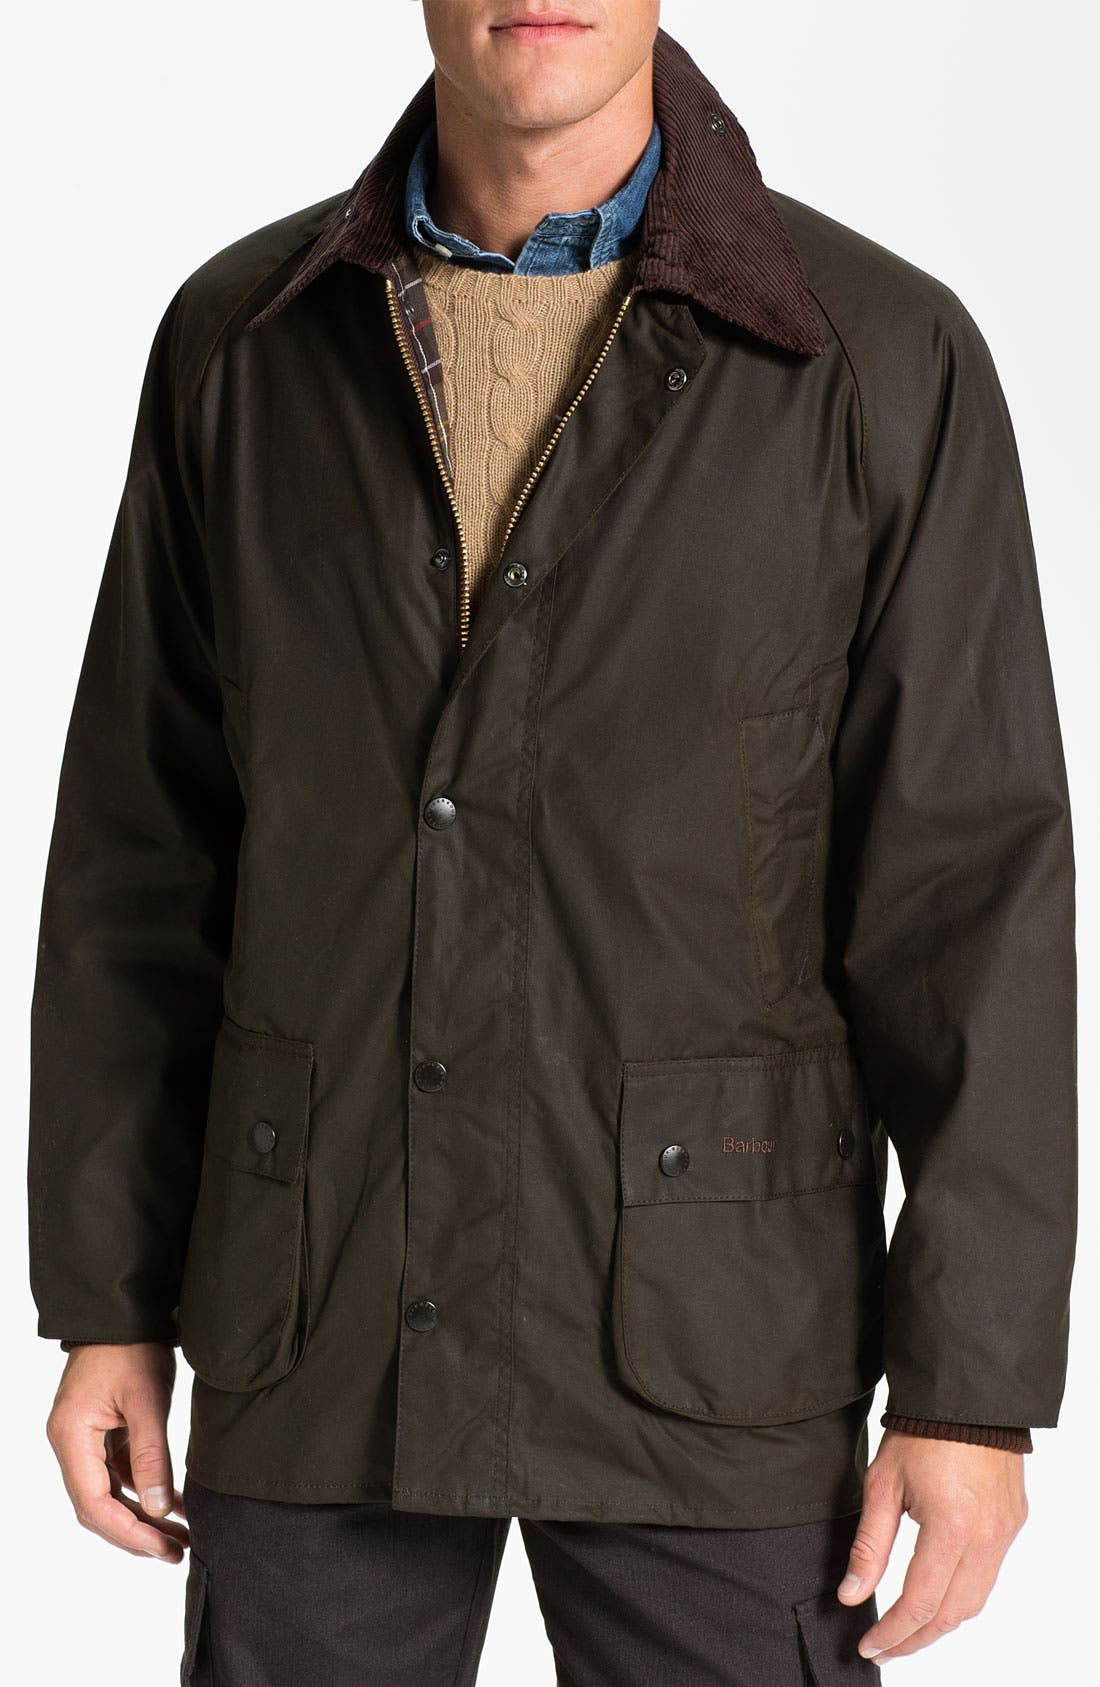 Alternate Image 1 Selected - Barbour 'Bedale' Relaxed Fit Waterproof Waxed Cotton Jacket